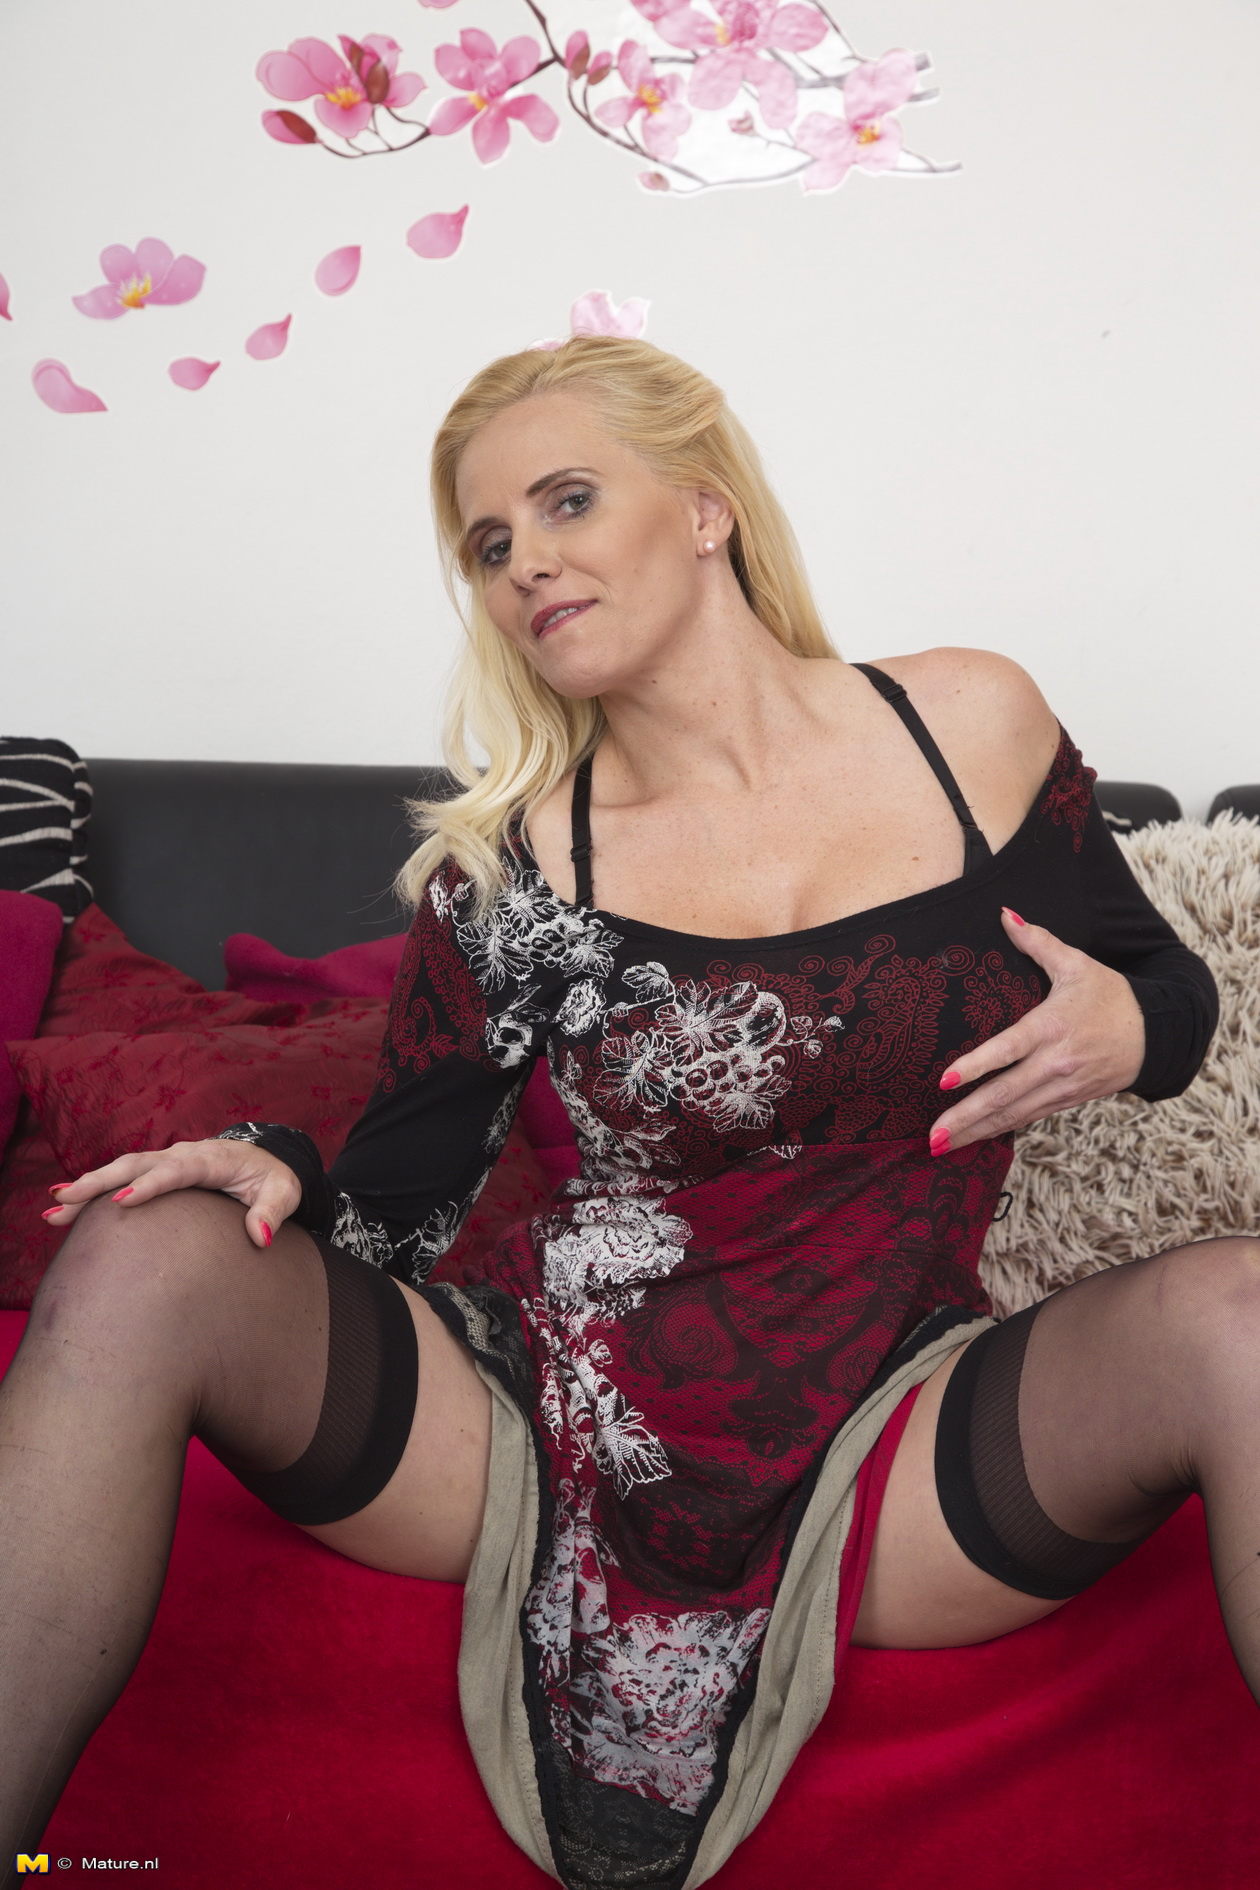 Milf stockings blonde horny